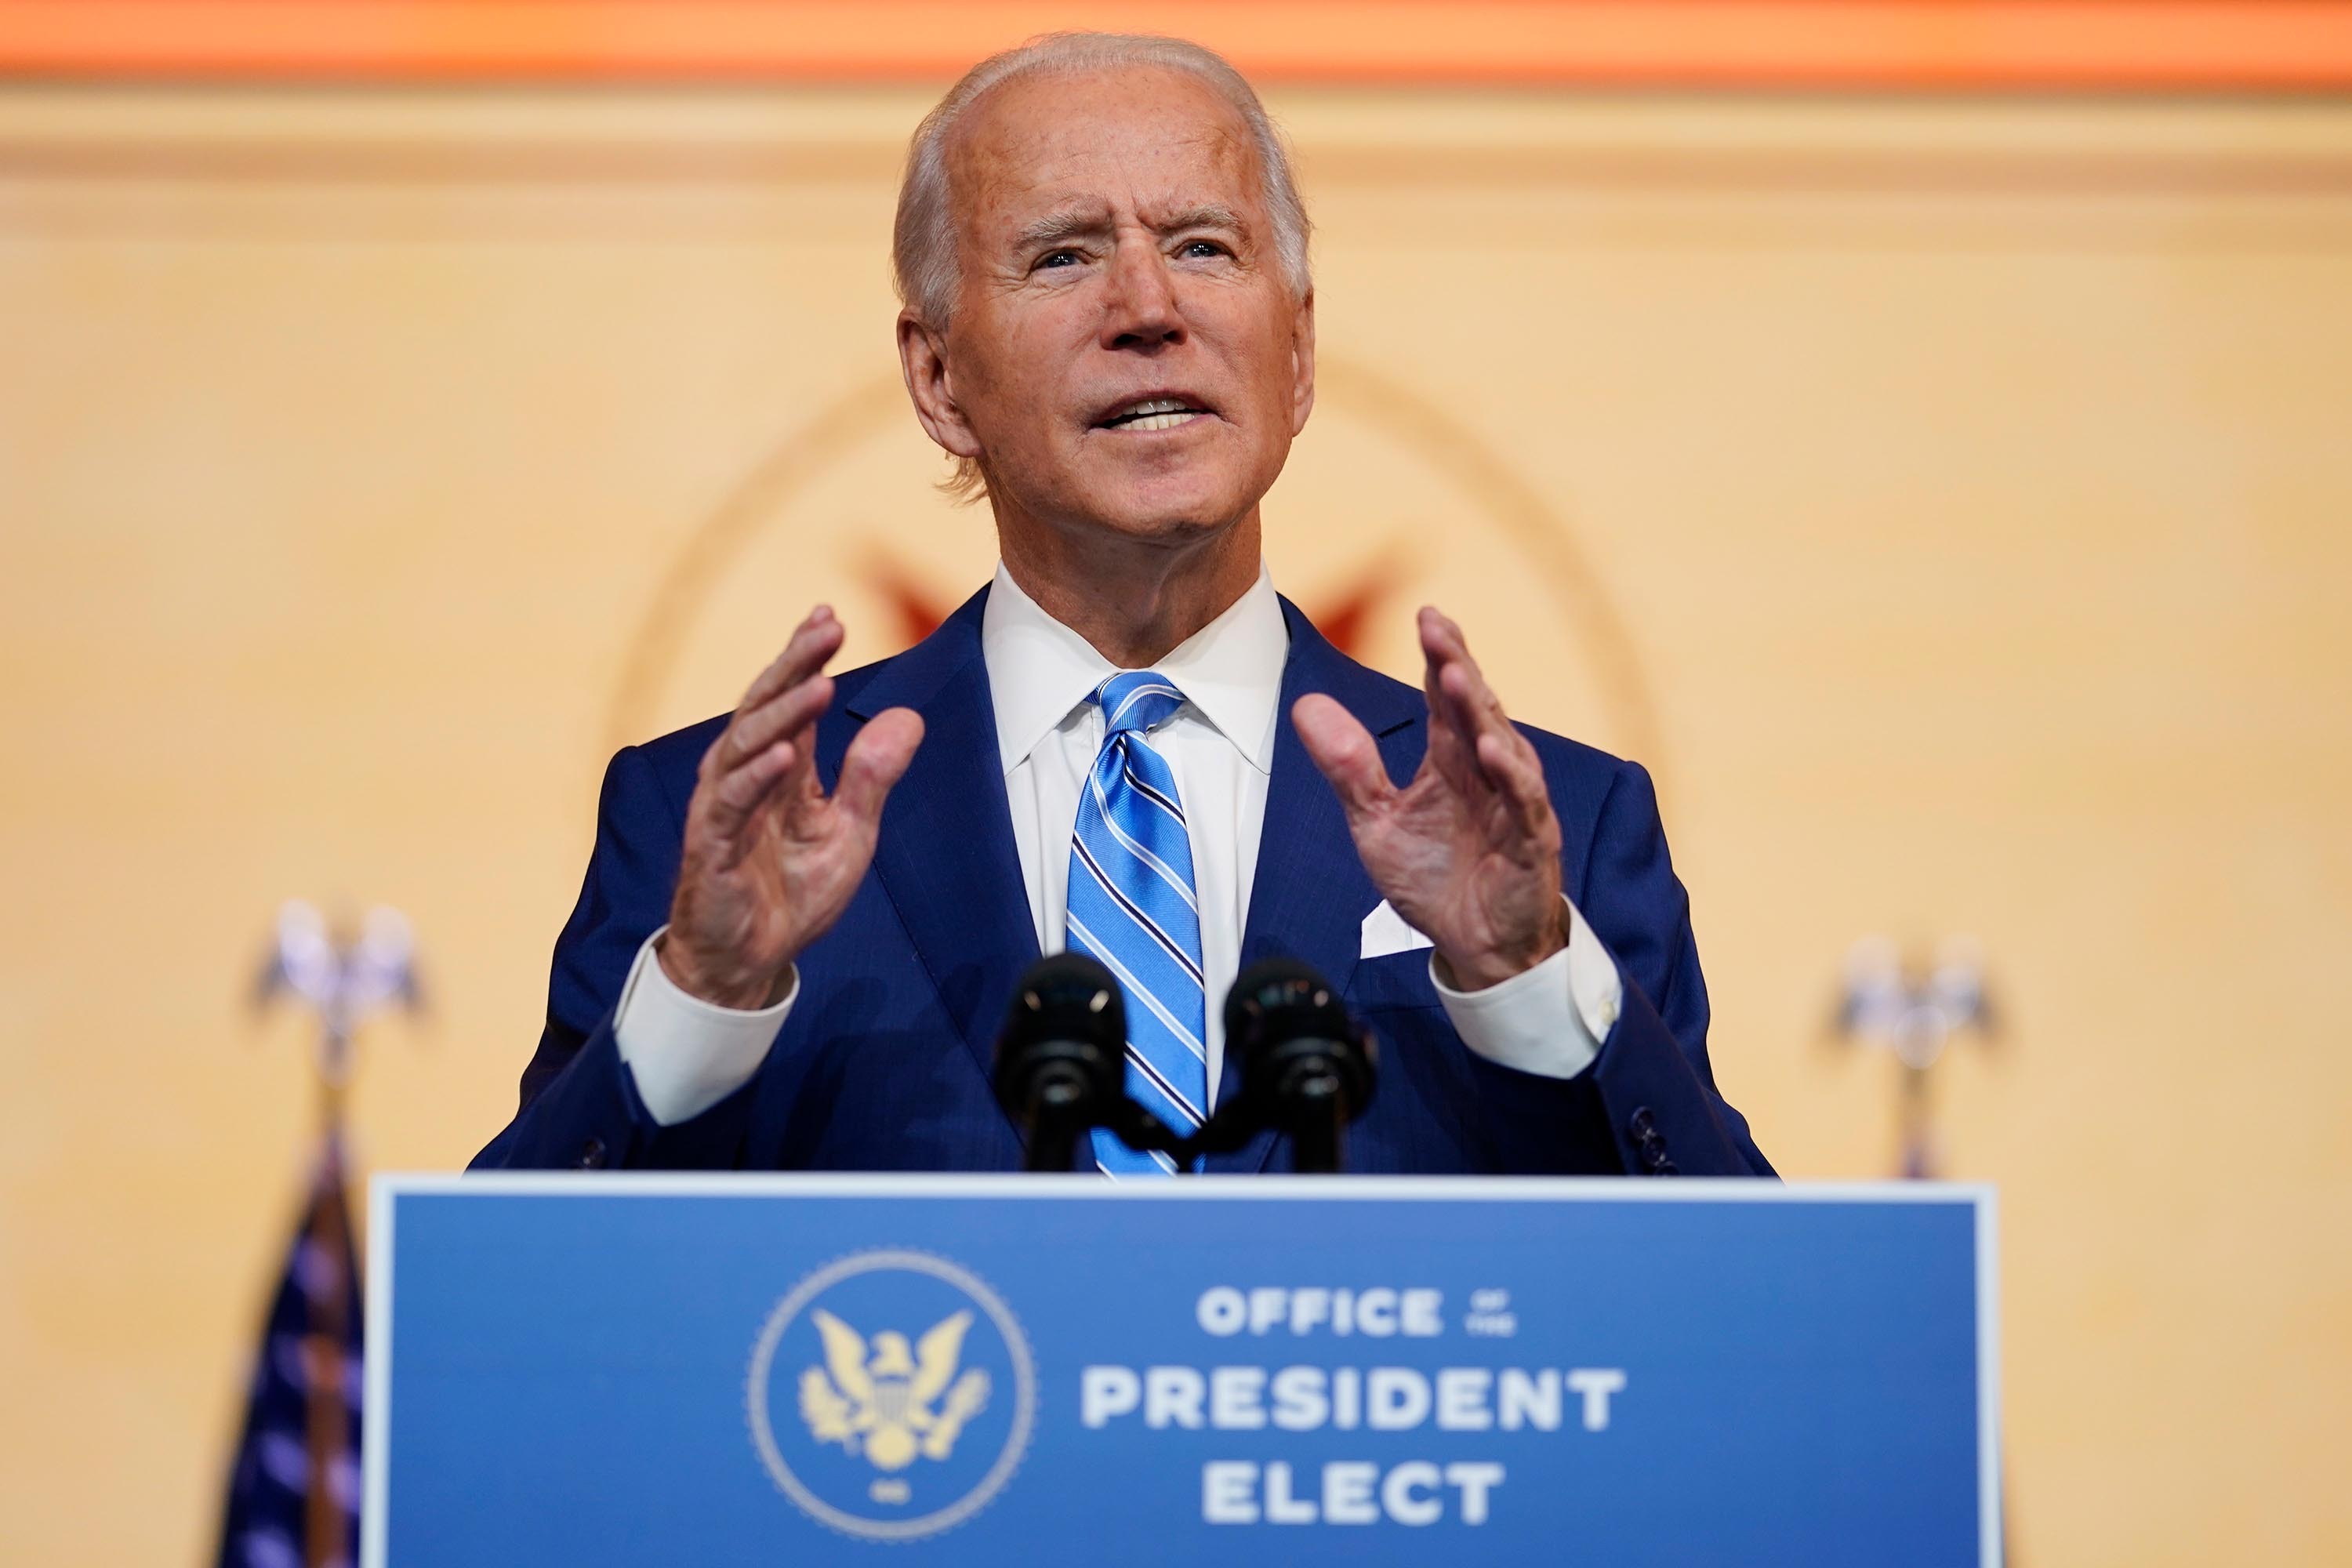 Biden to name diverse economic team, with three women in top roles to help build recovery